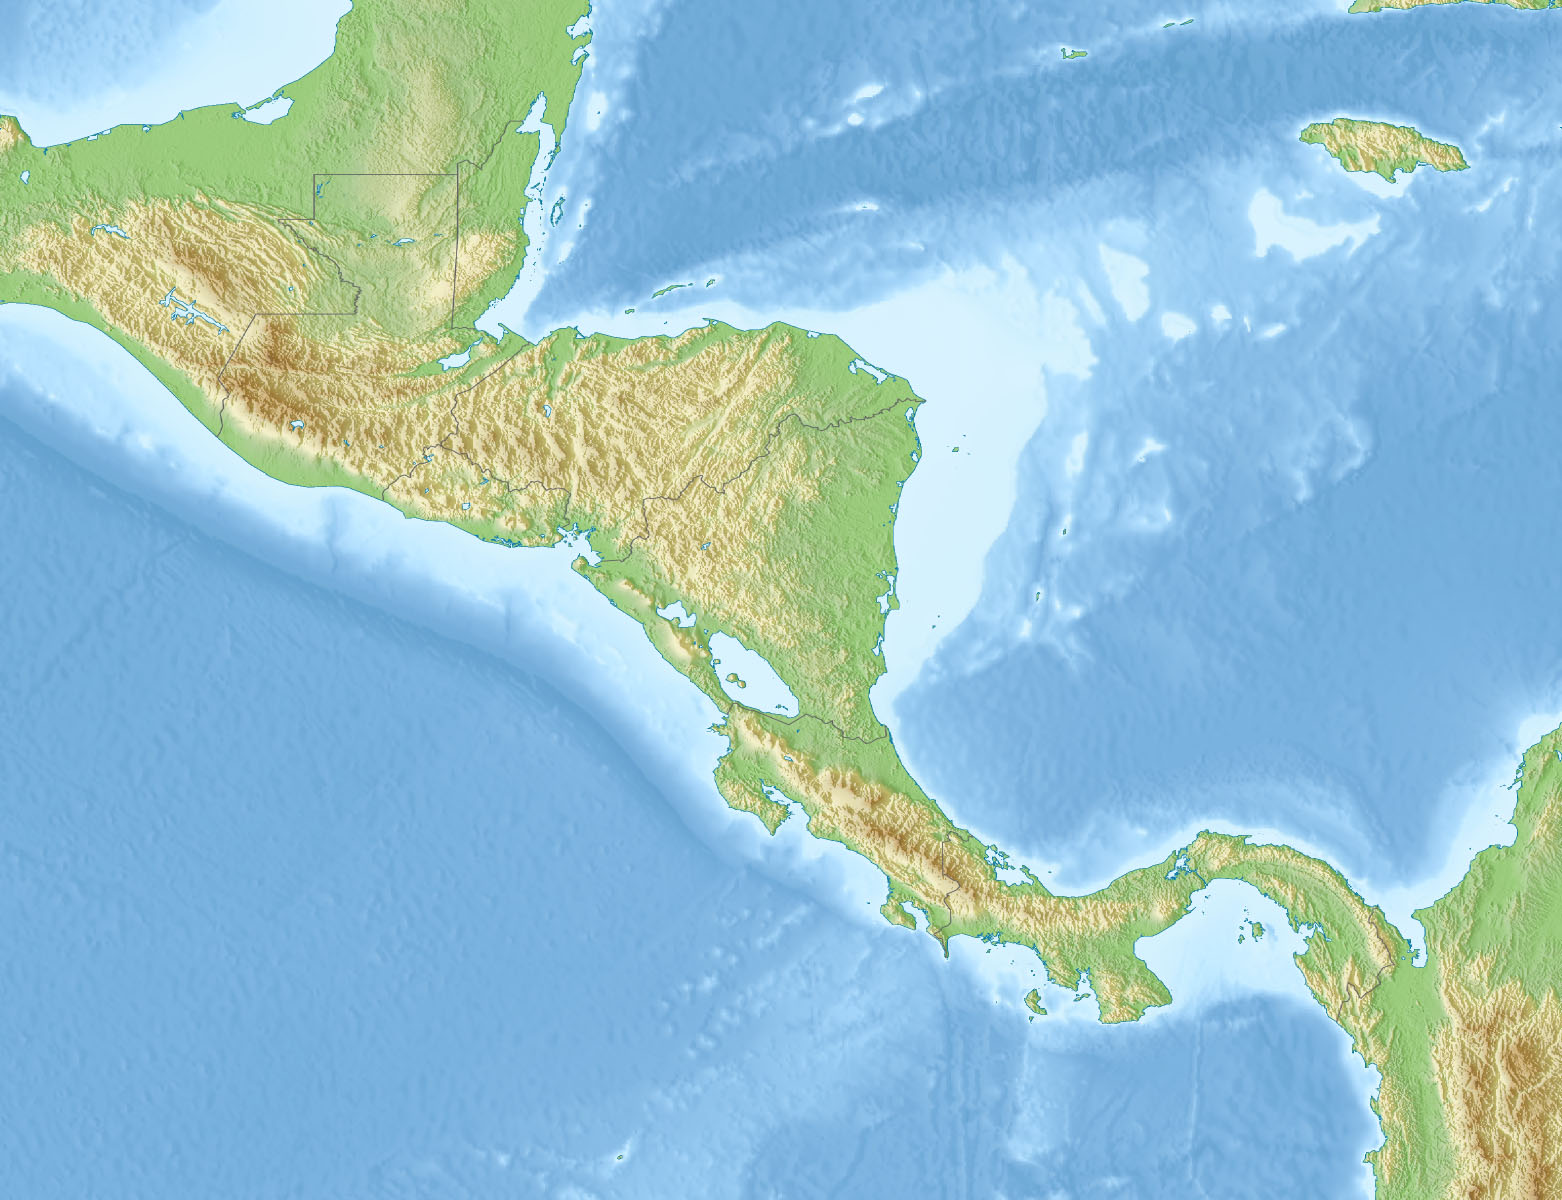 Relief map of Central America